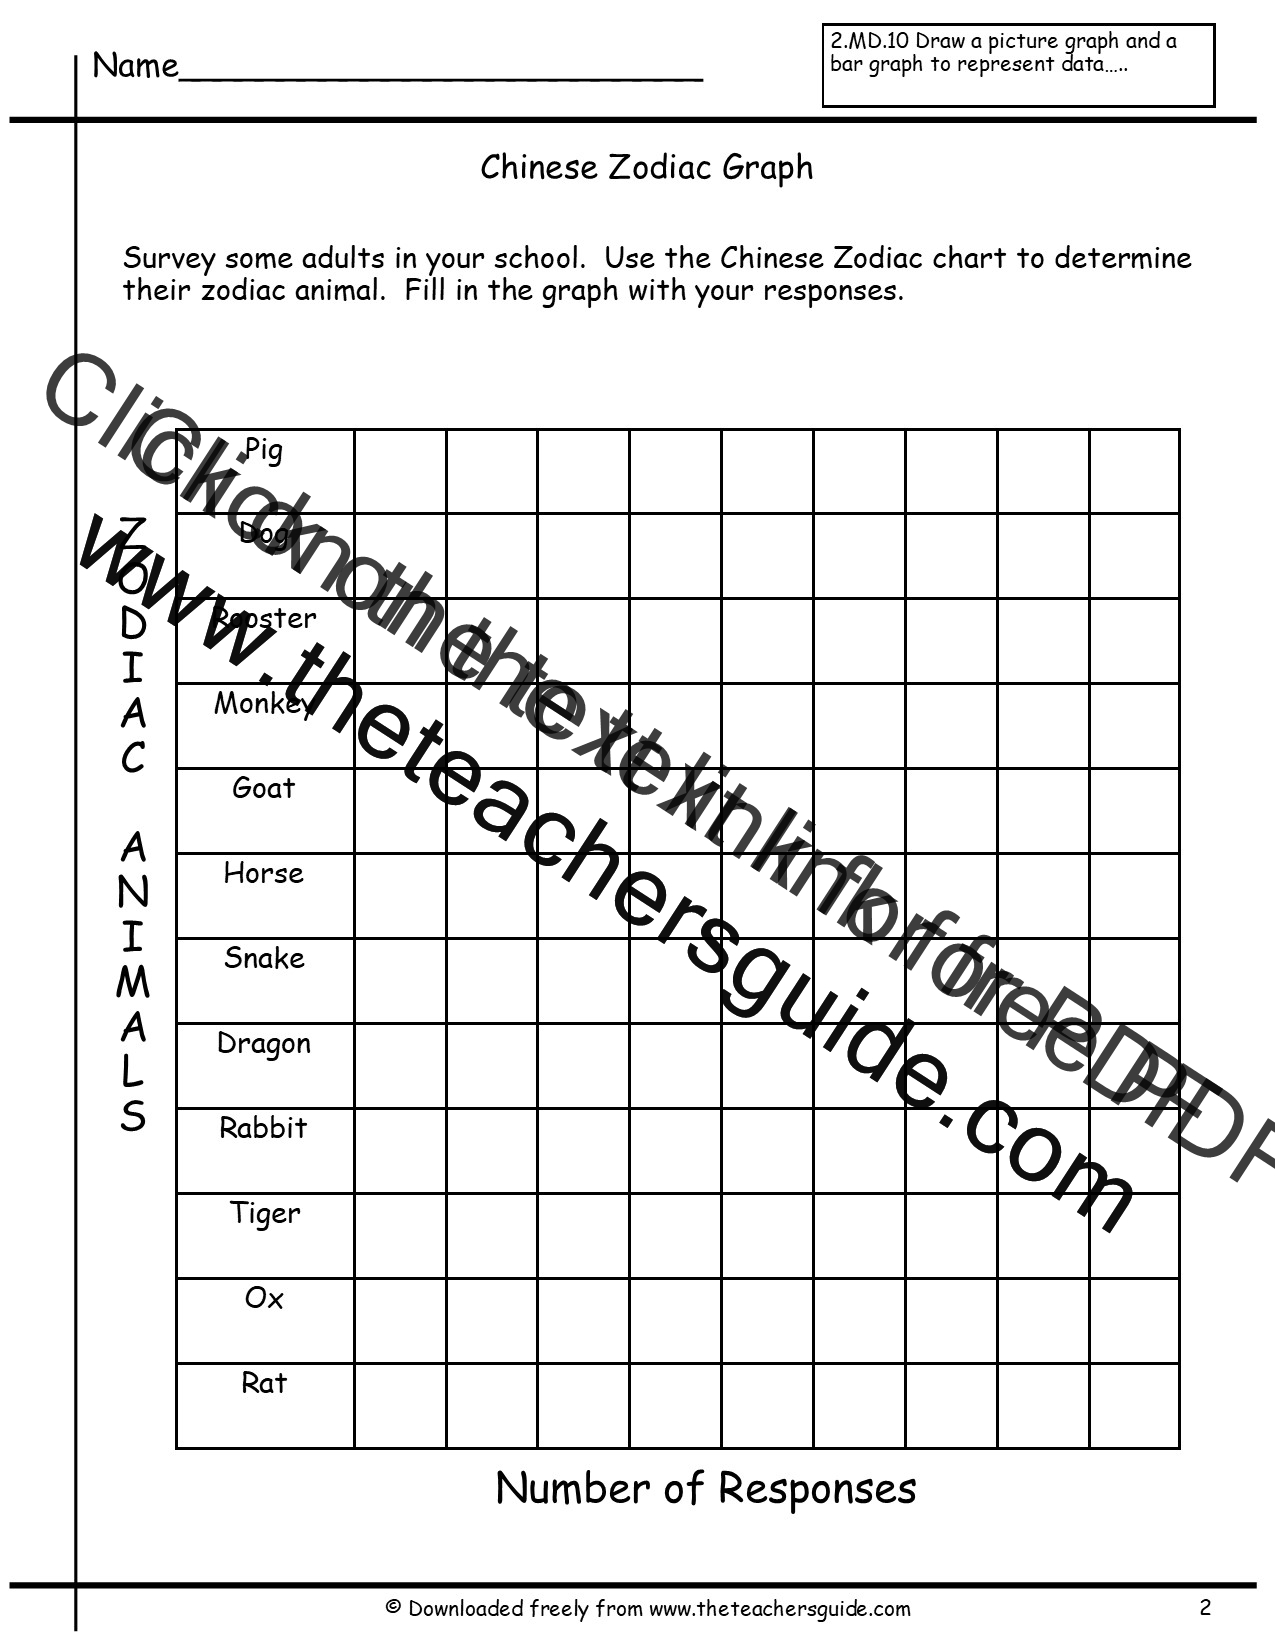 Reading and Creating Bar Graphs Worksheets from The Teachers Guide – Picture Graphs Worksheets